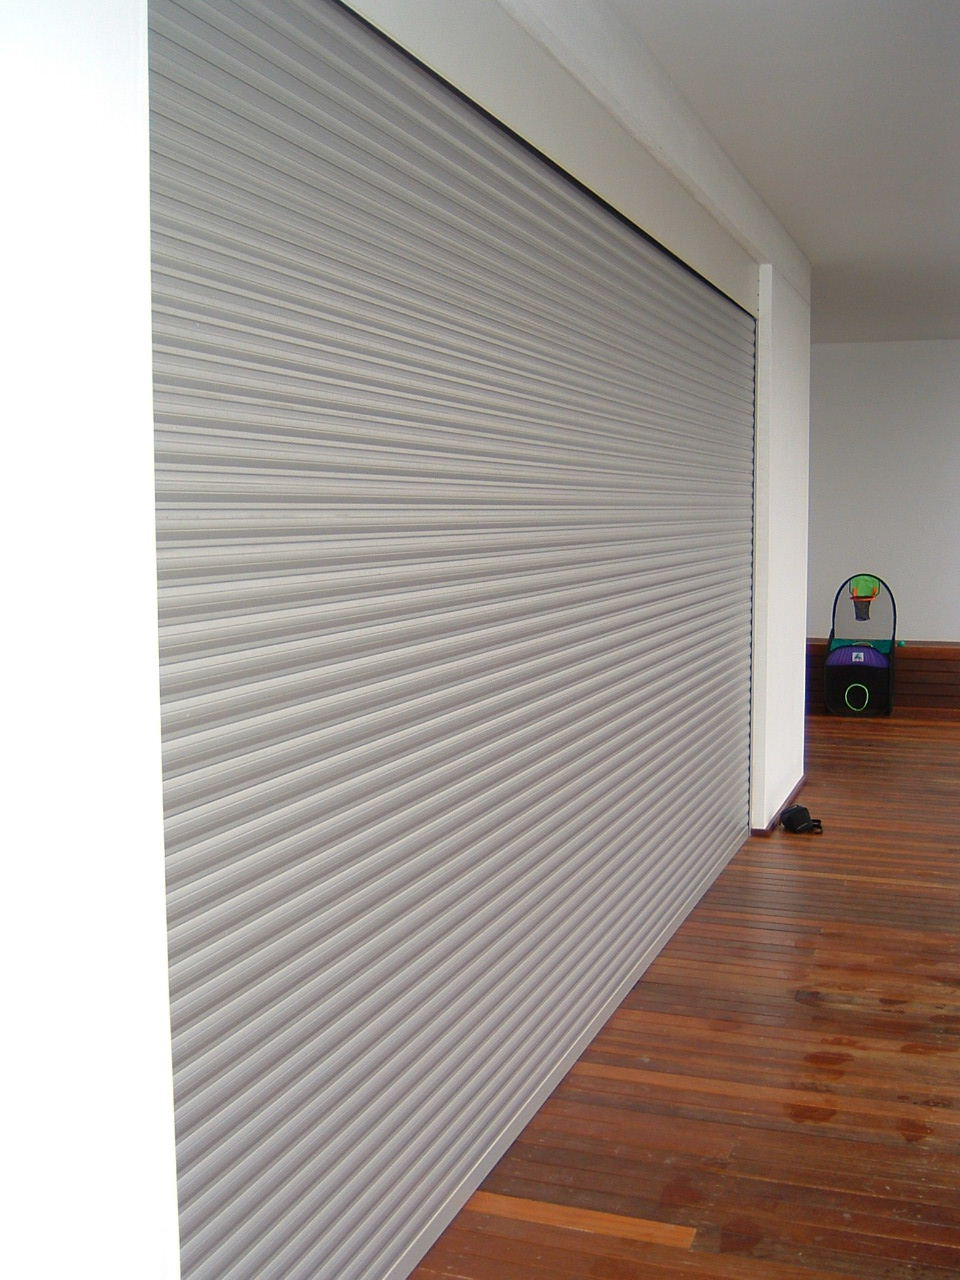 External Window Shutters Rs5 Rs6 The Australian